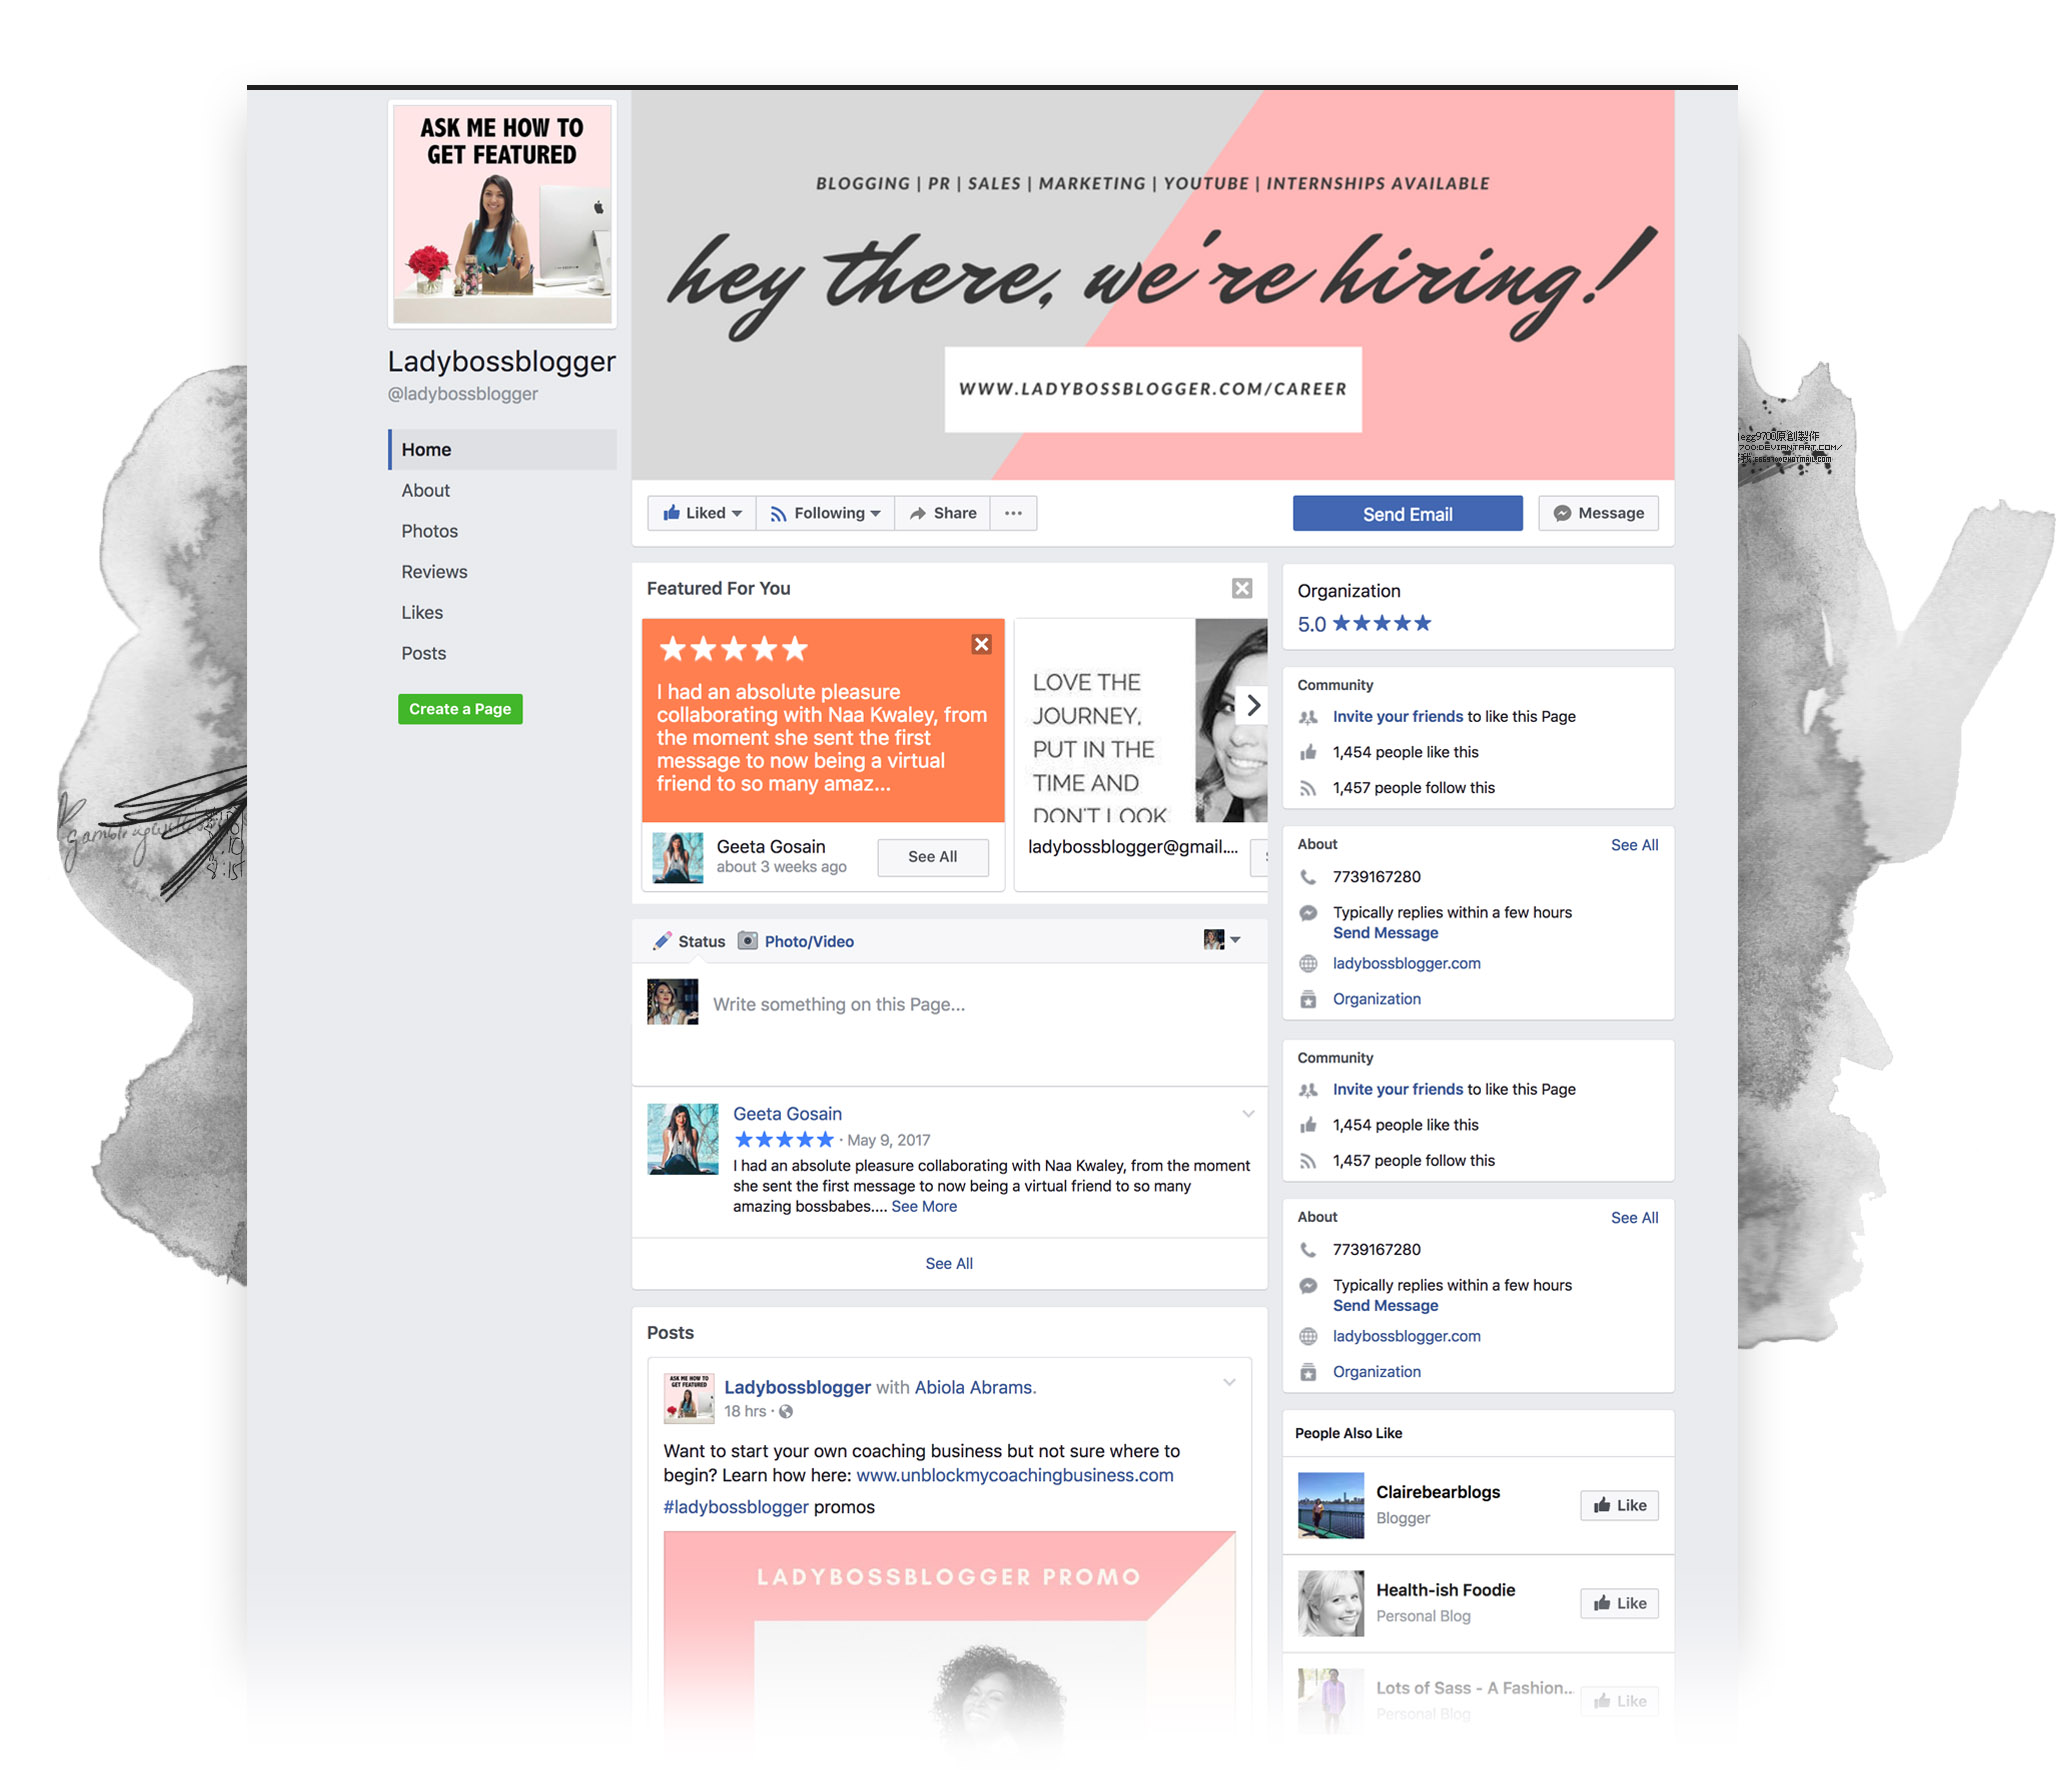 Lady Boss Blogger Facebook Page